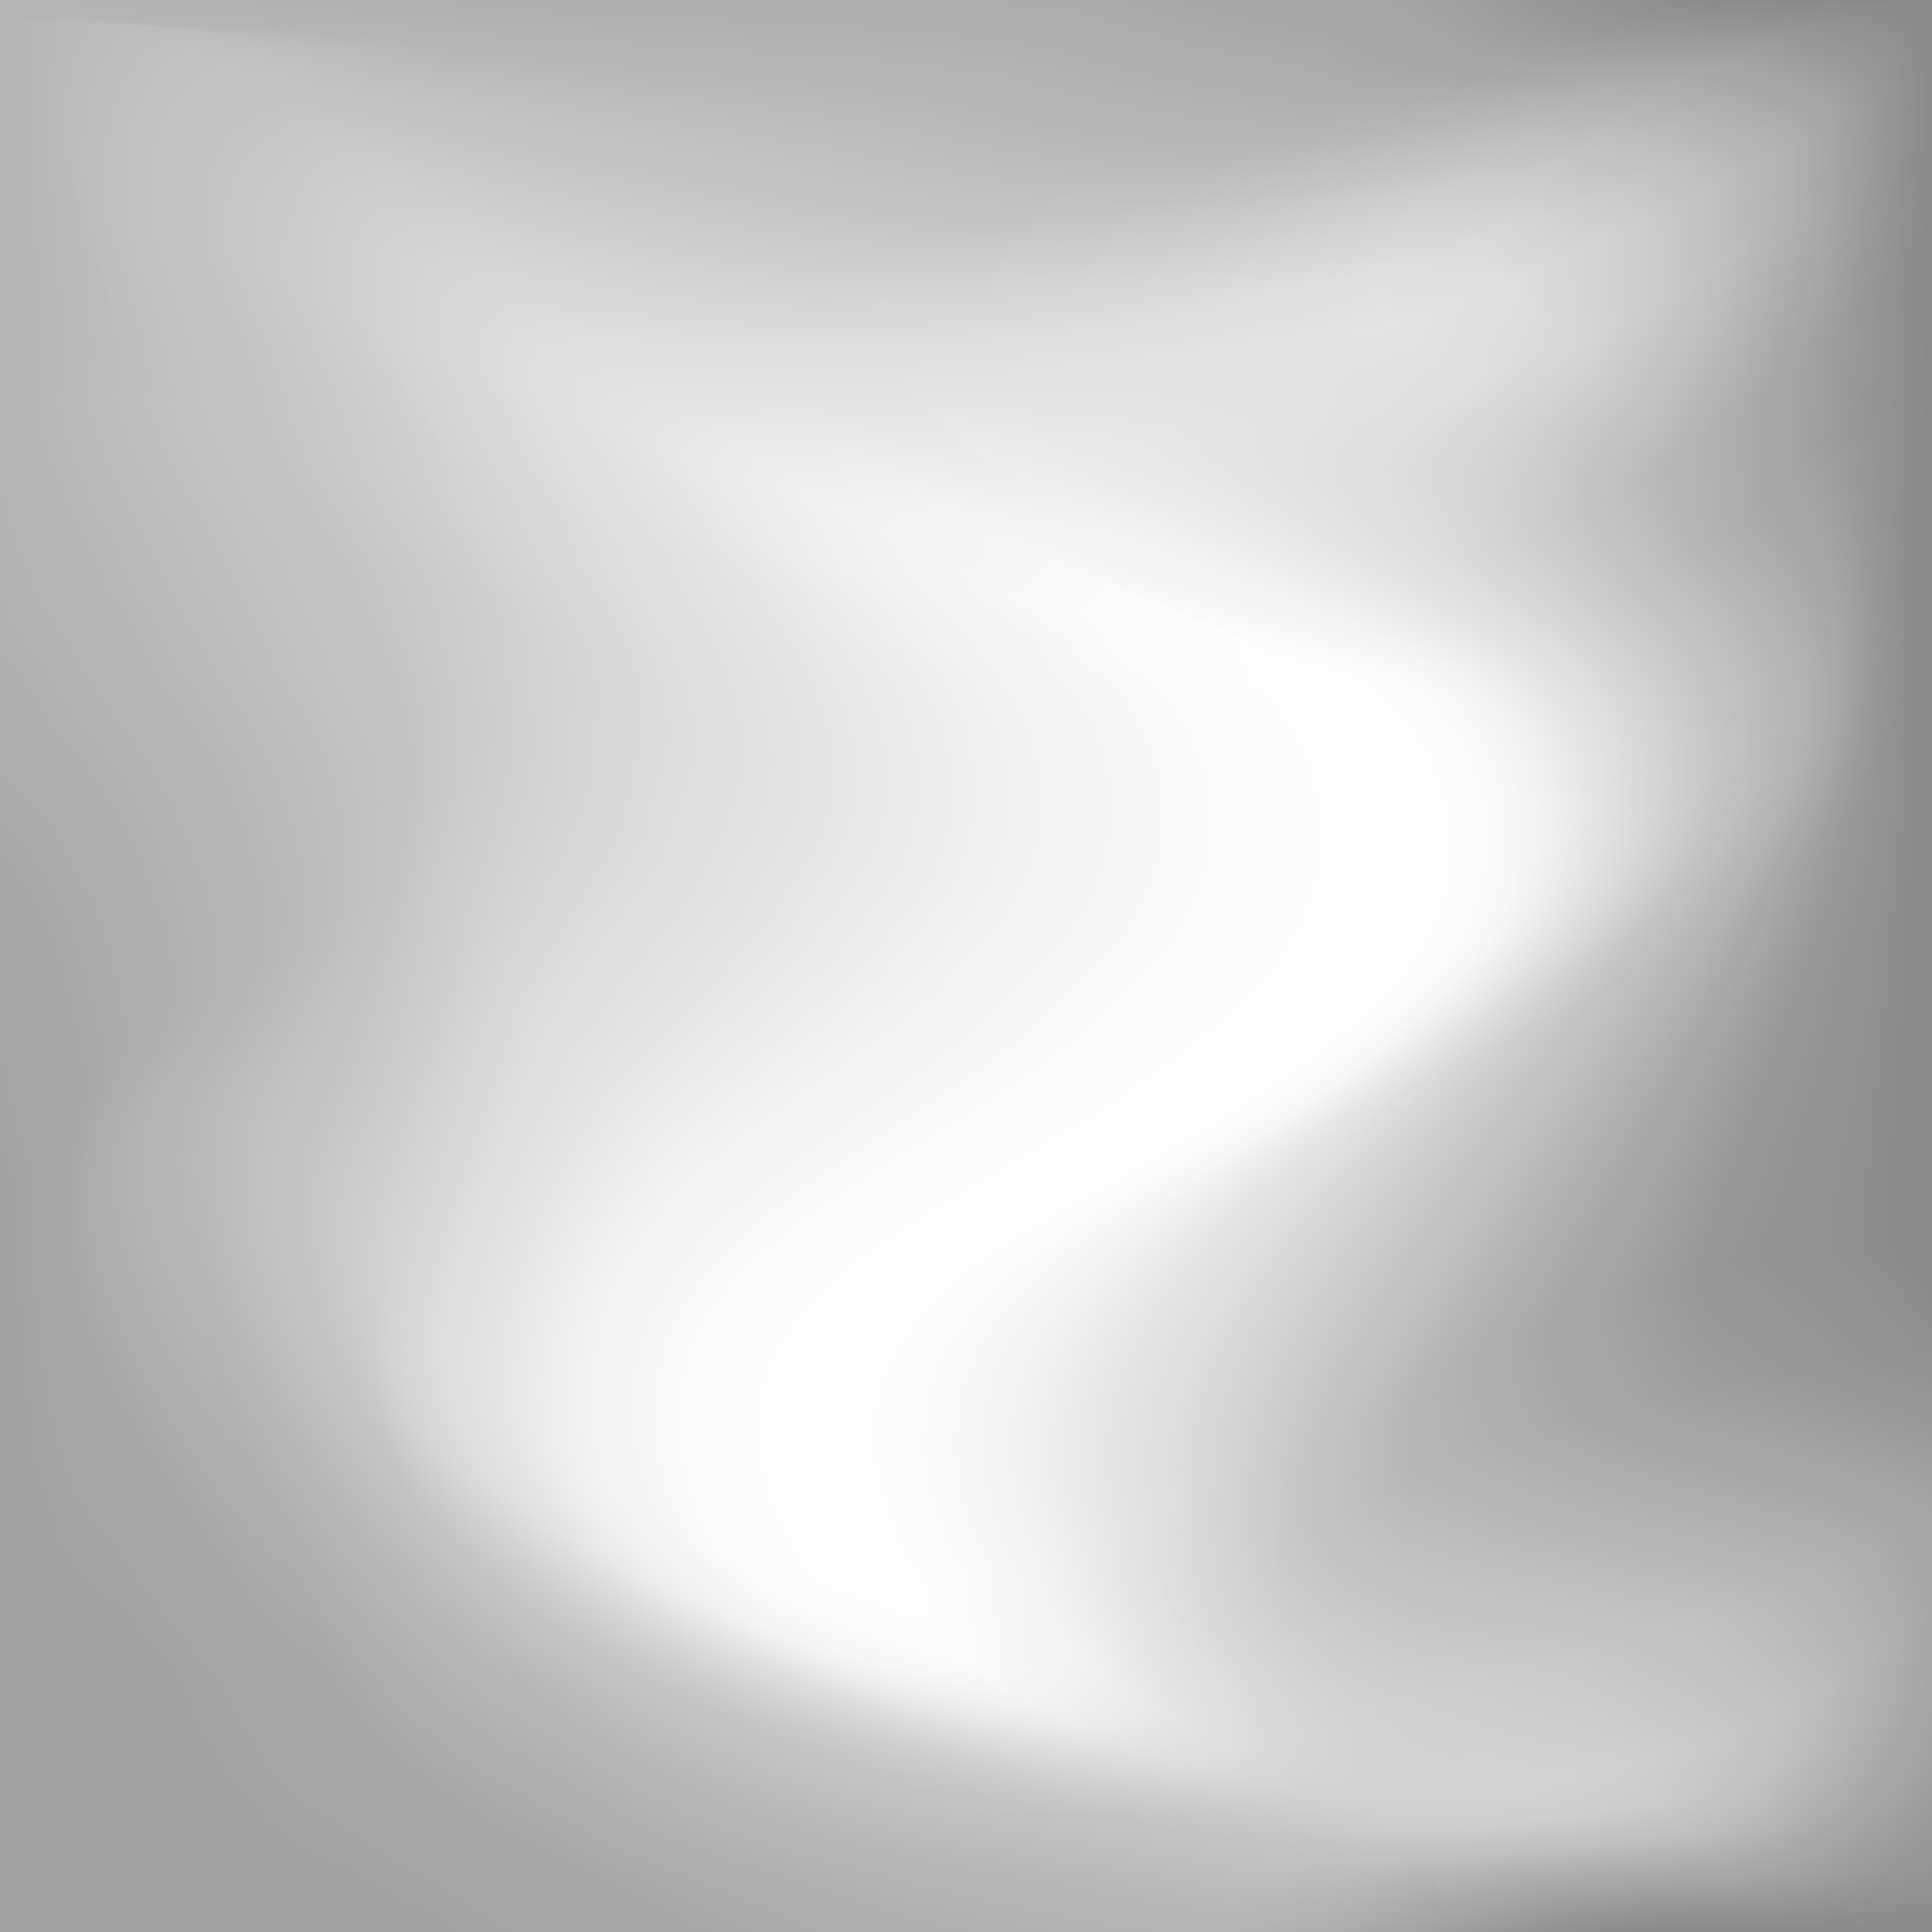 Blurred silver effect holographic gradient background example image 9